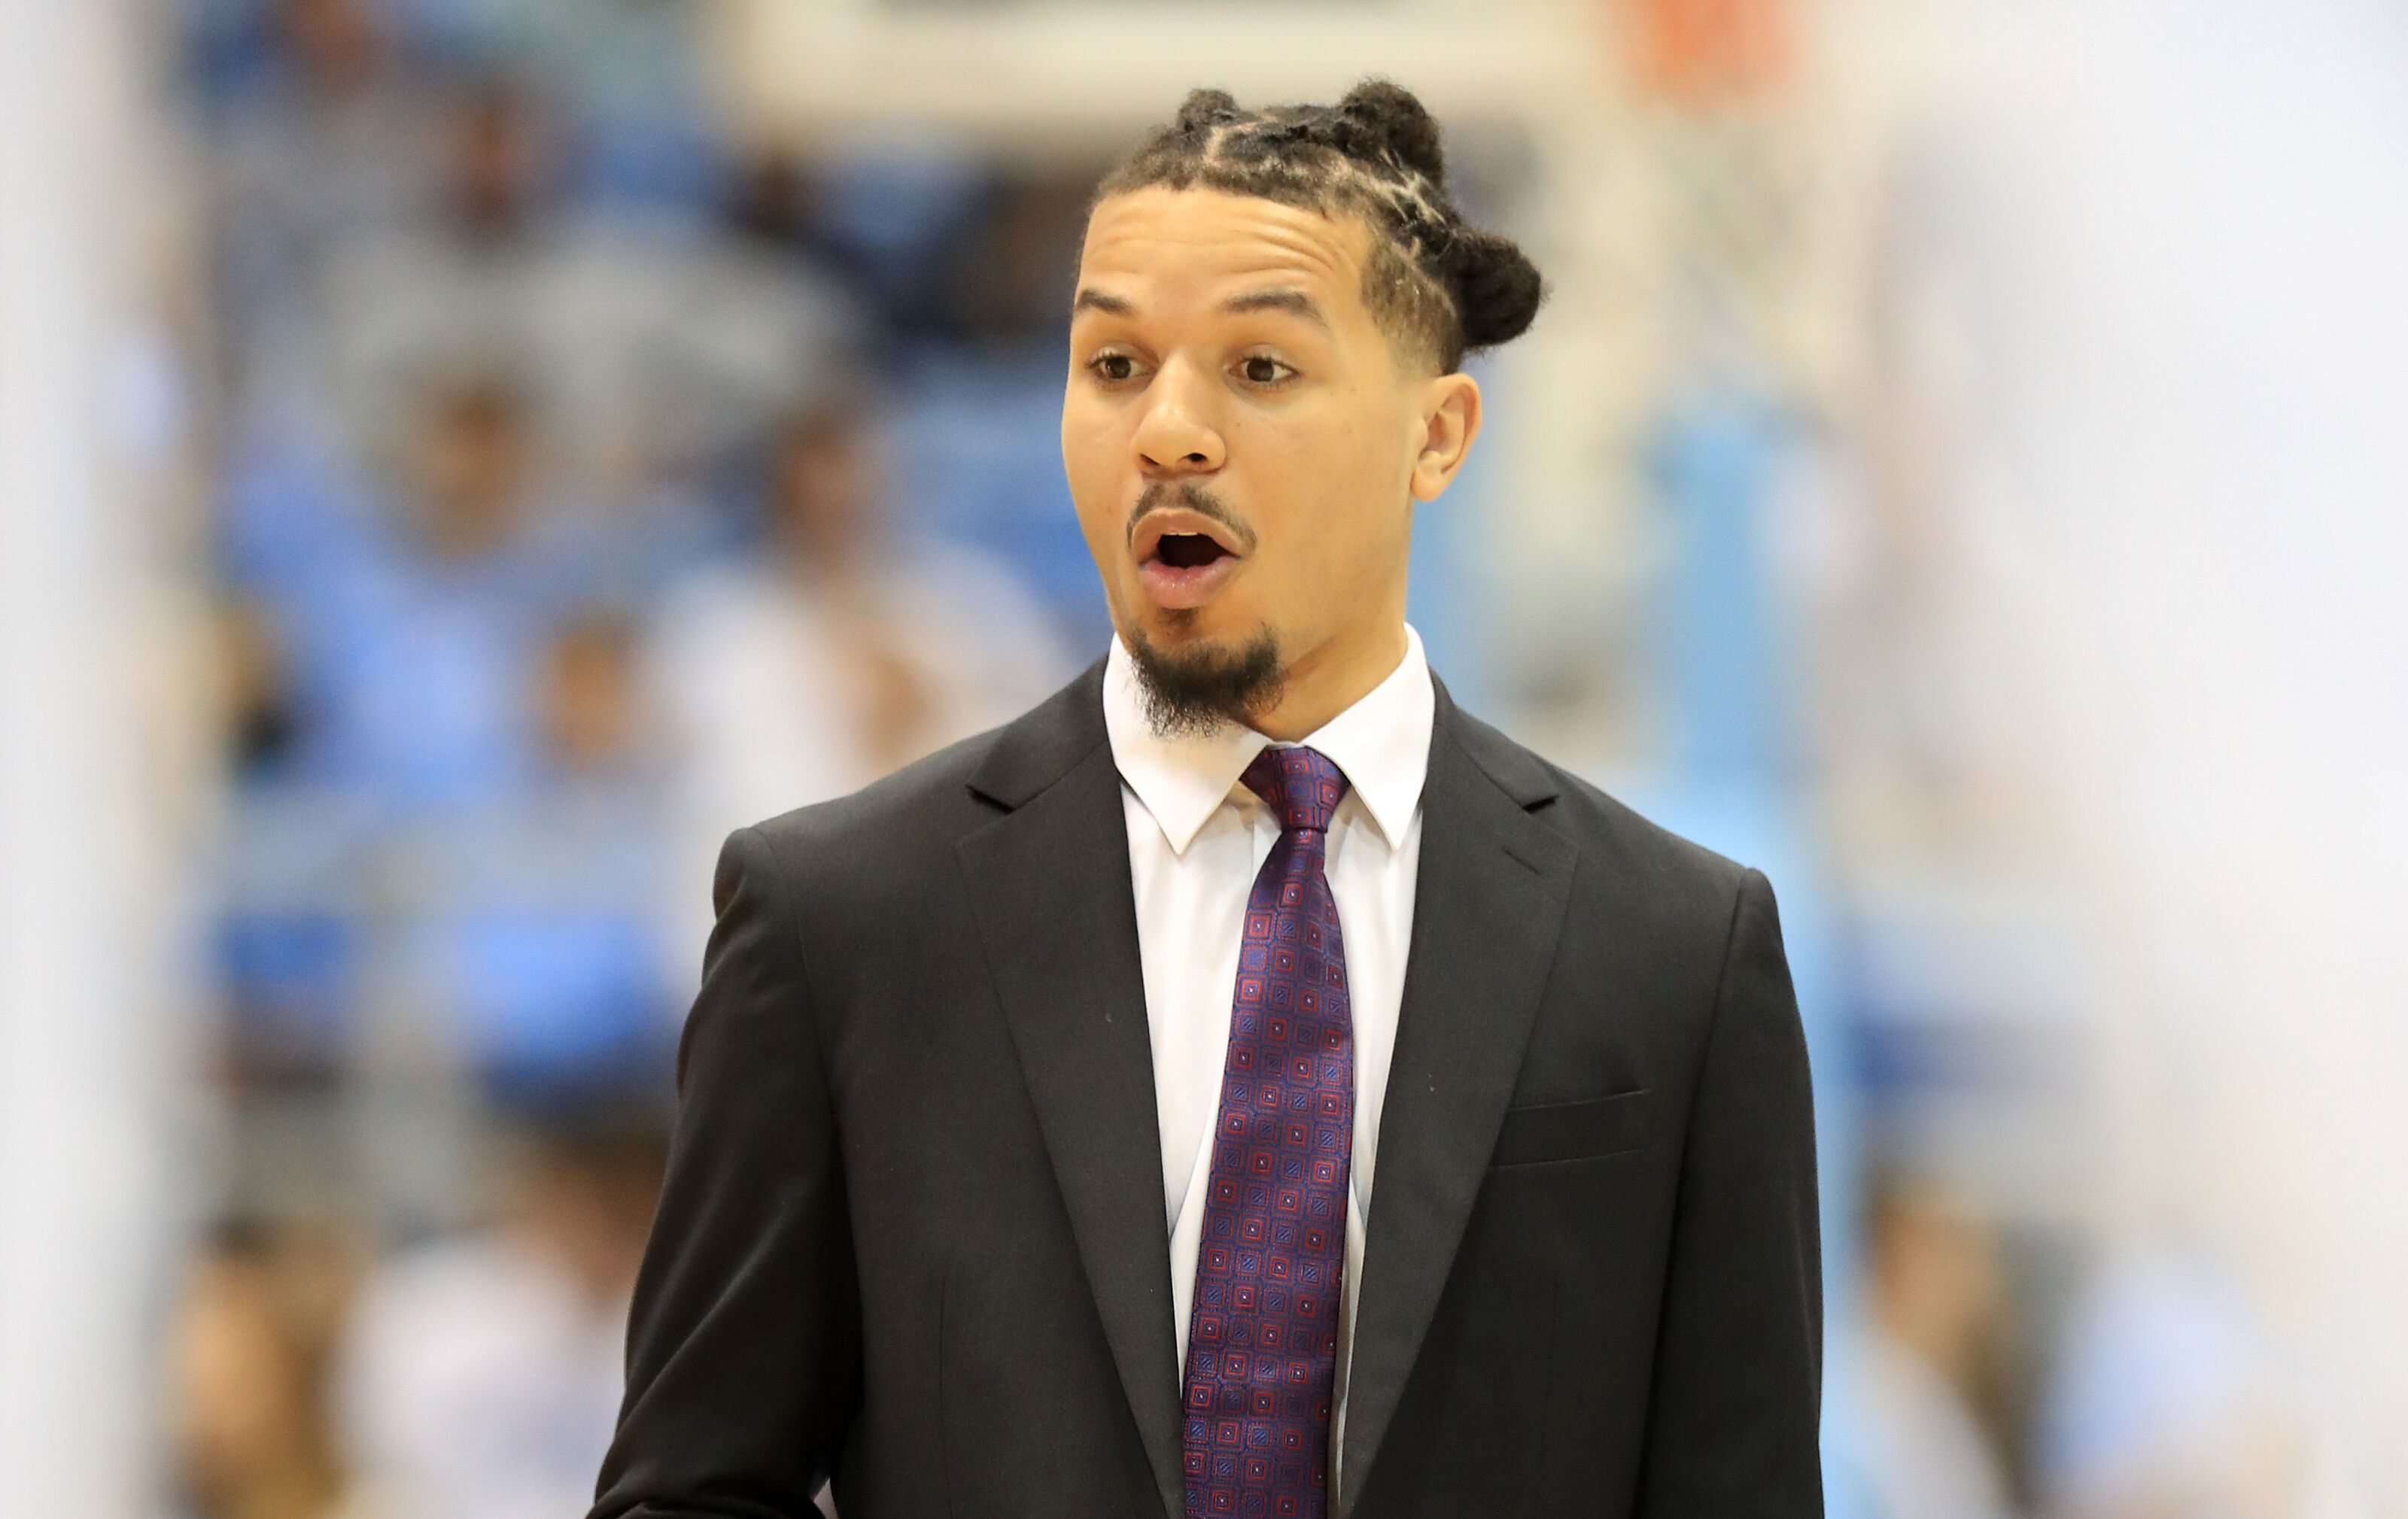 UNC Basketball: Cole Anthony provides update on his status